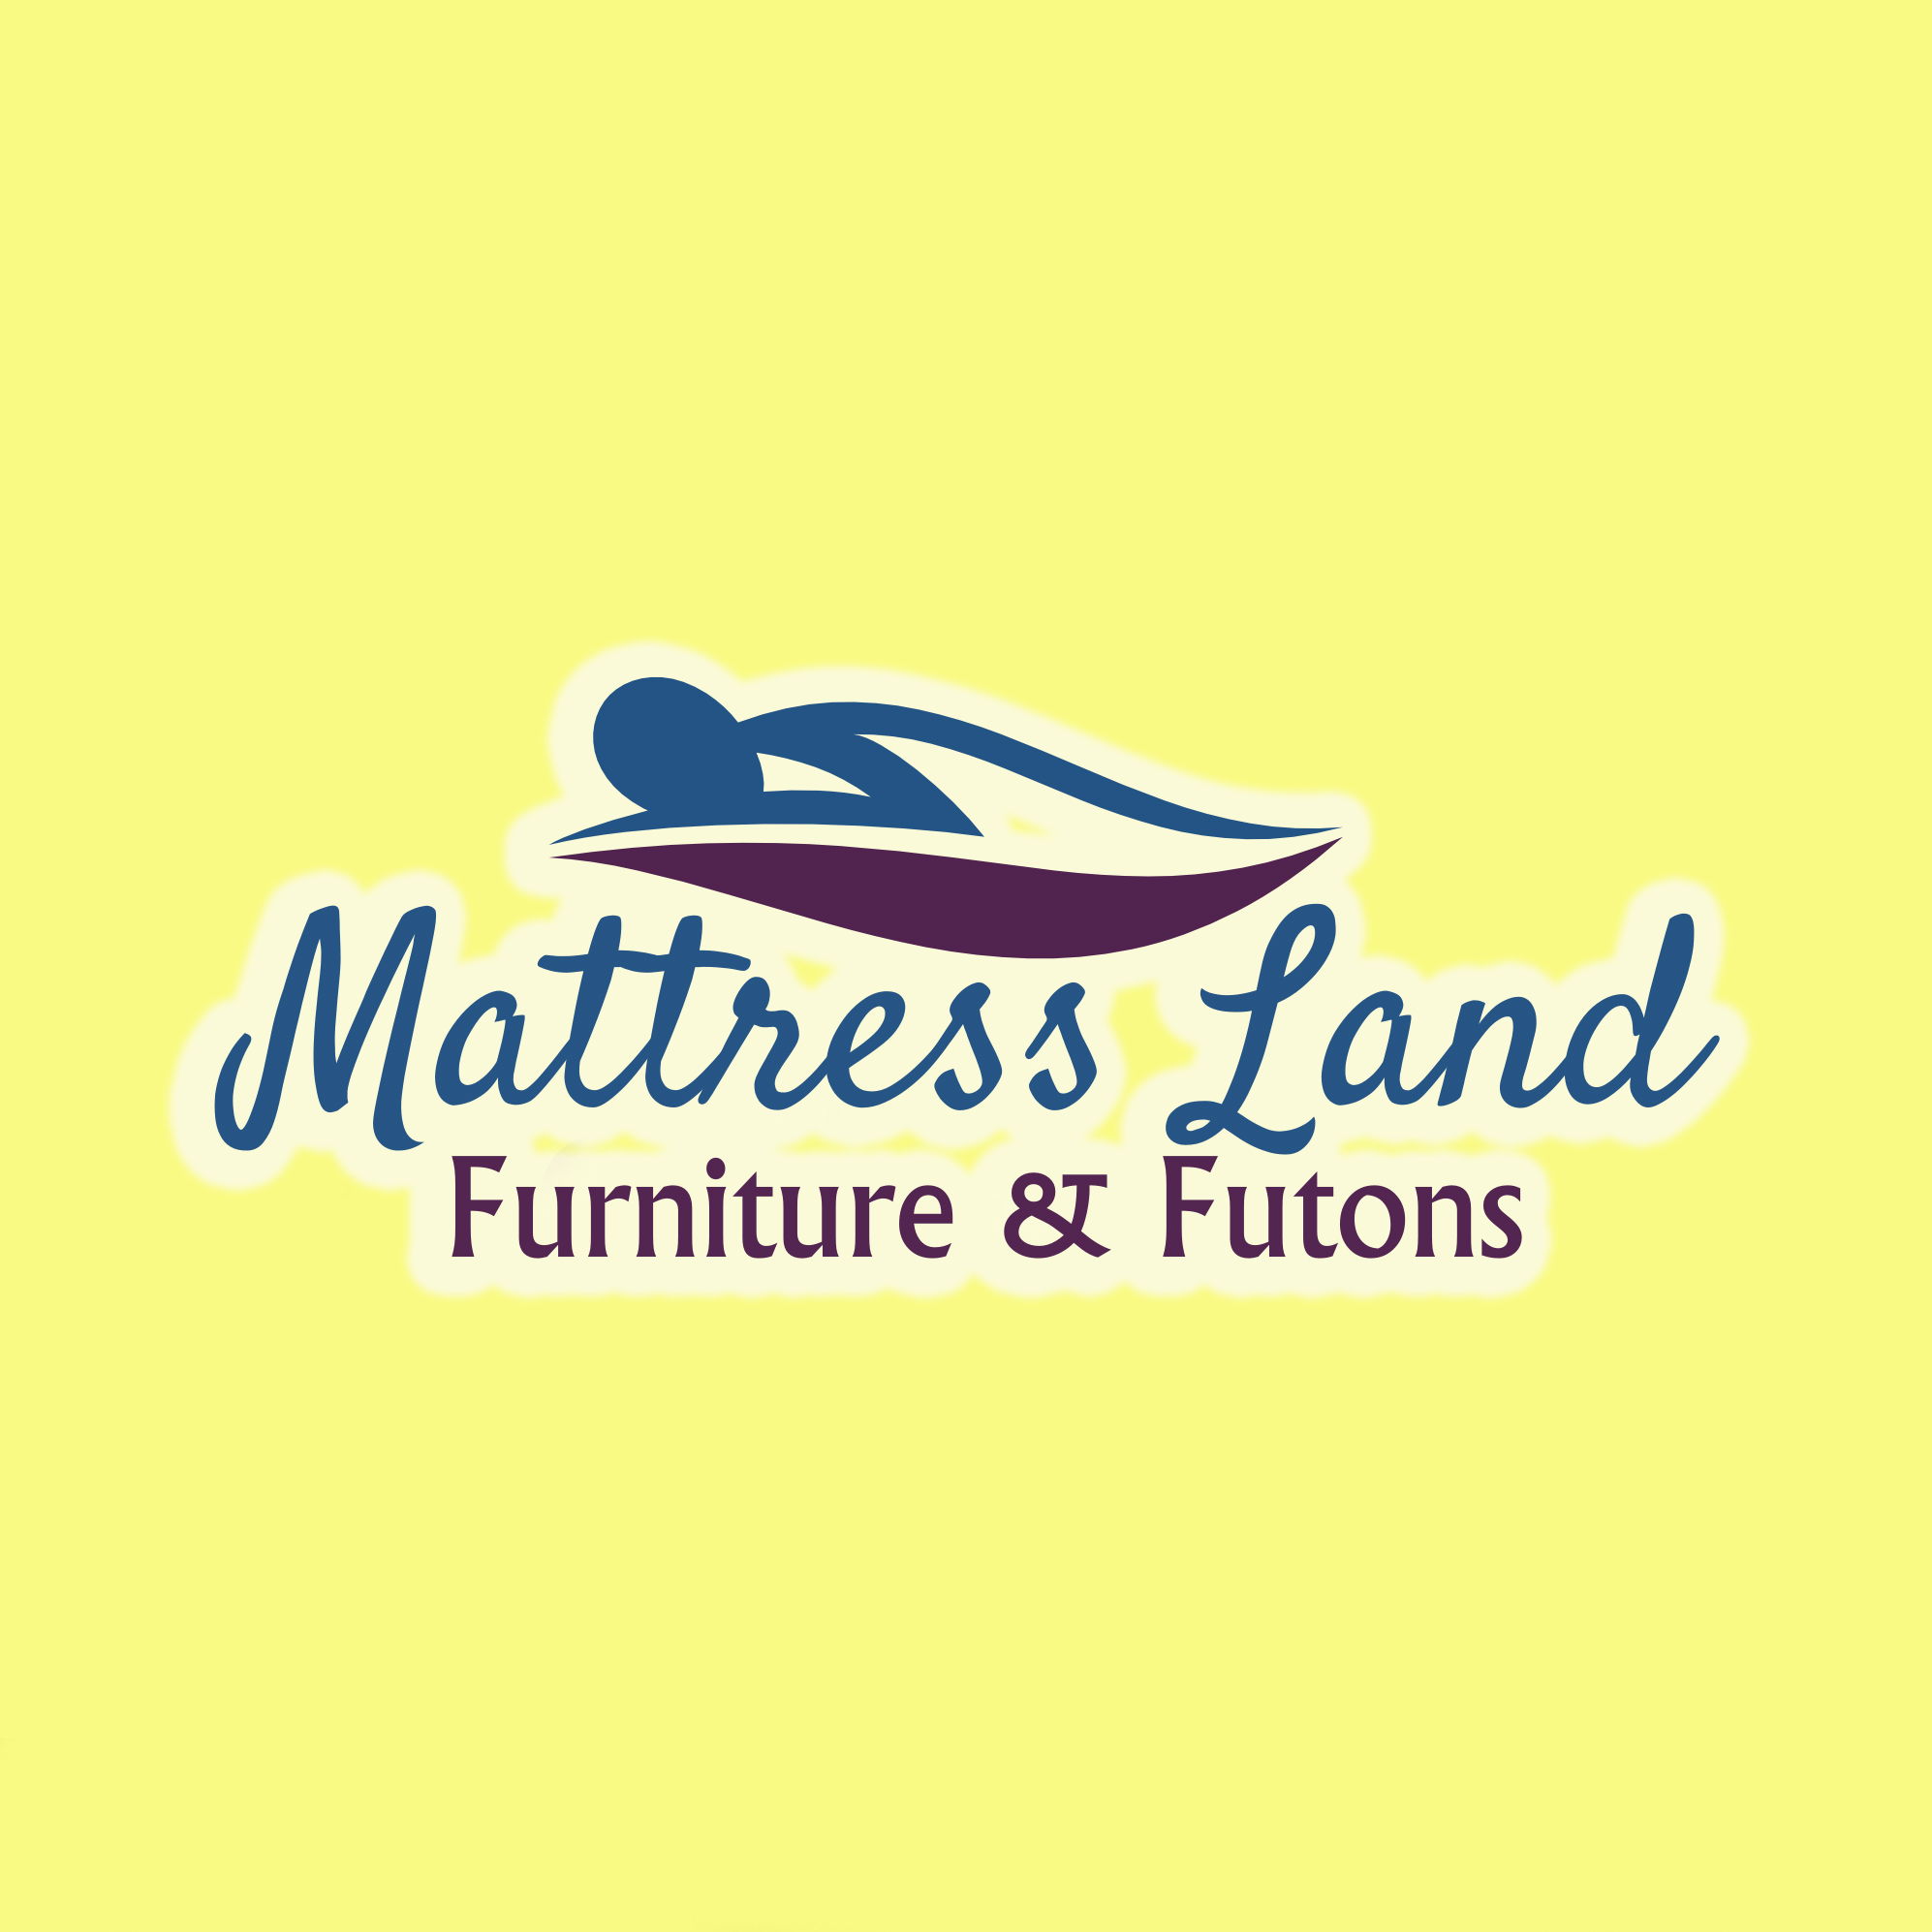 land websites and local mattress in s your location retailcatalog amazonaws visalia image com bedding store us